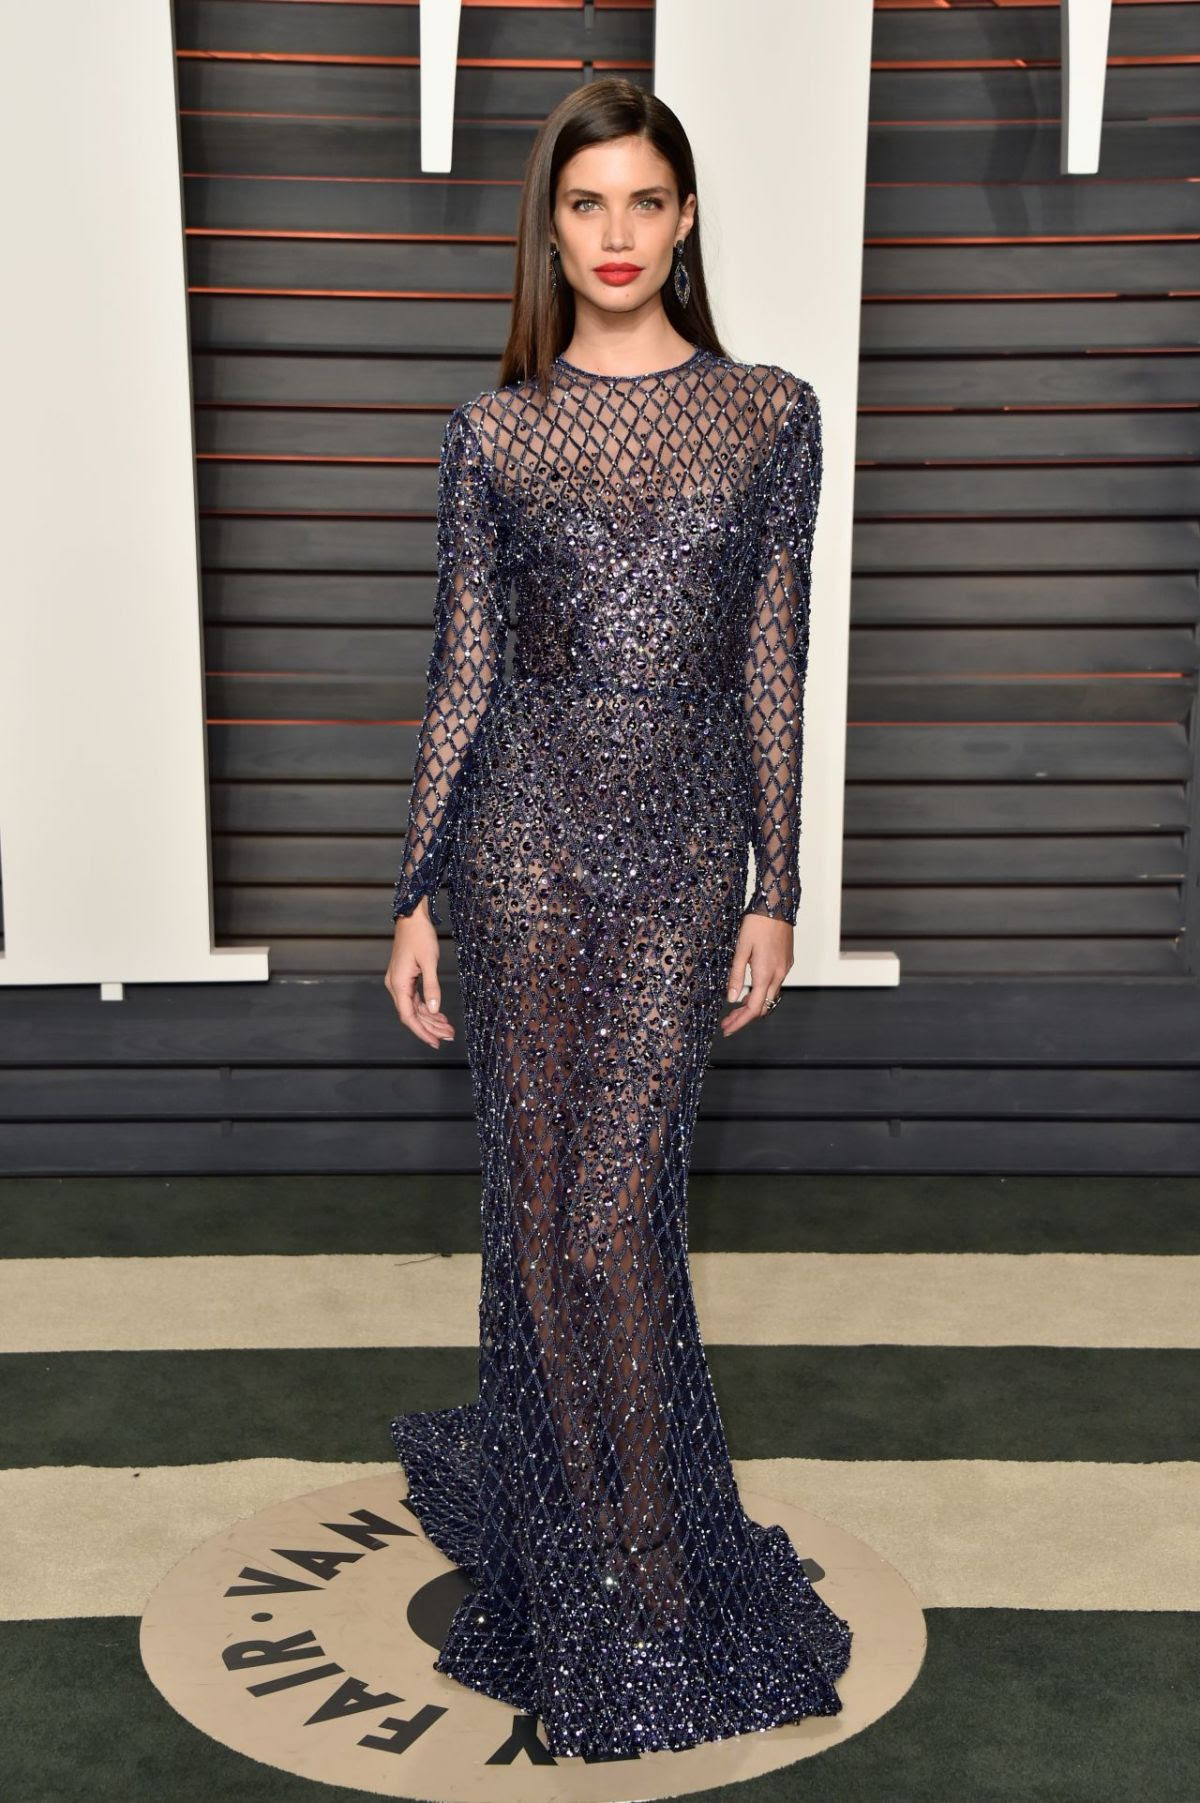 SARA SAMPAIO at Vanity Fair Oscar 2016 Party in Beverly Hills 02/28/2016